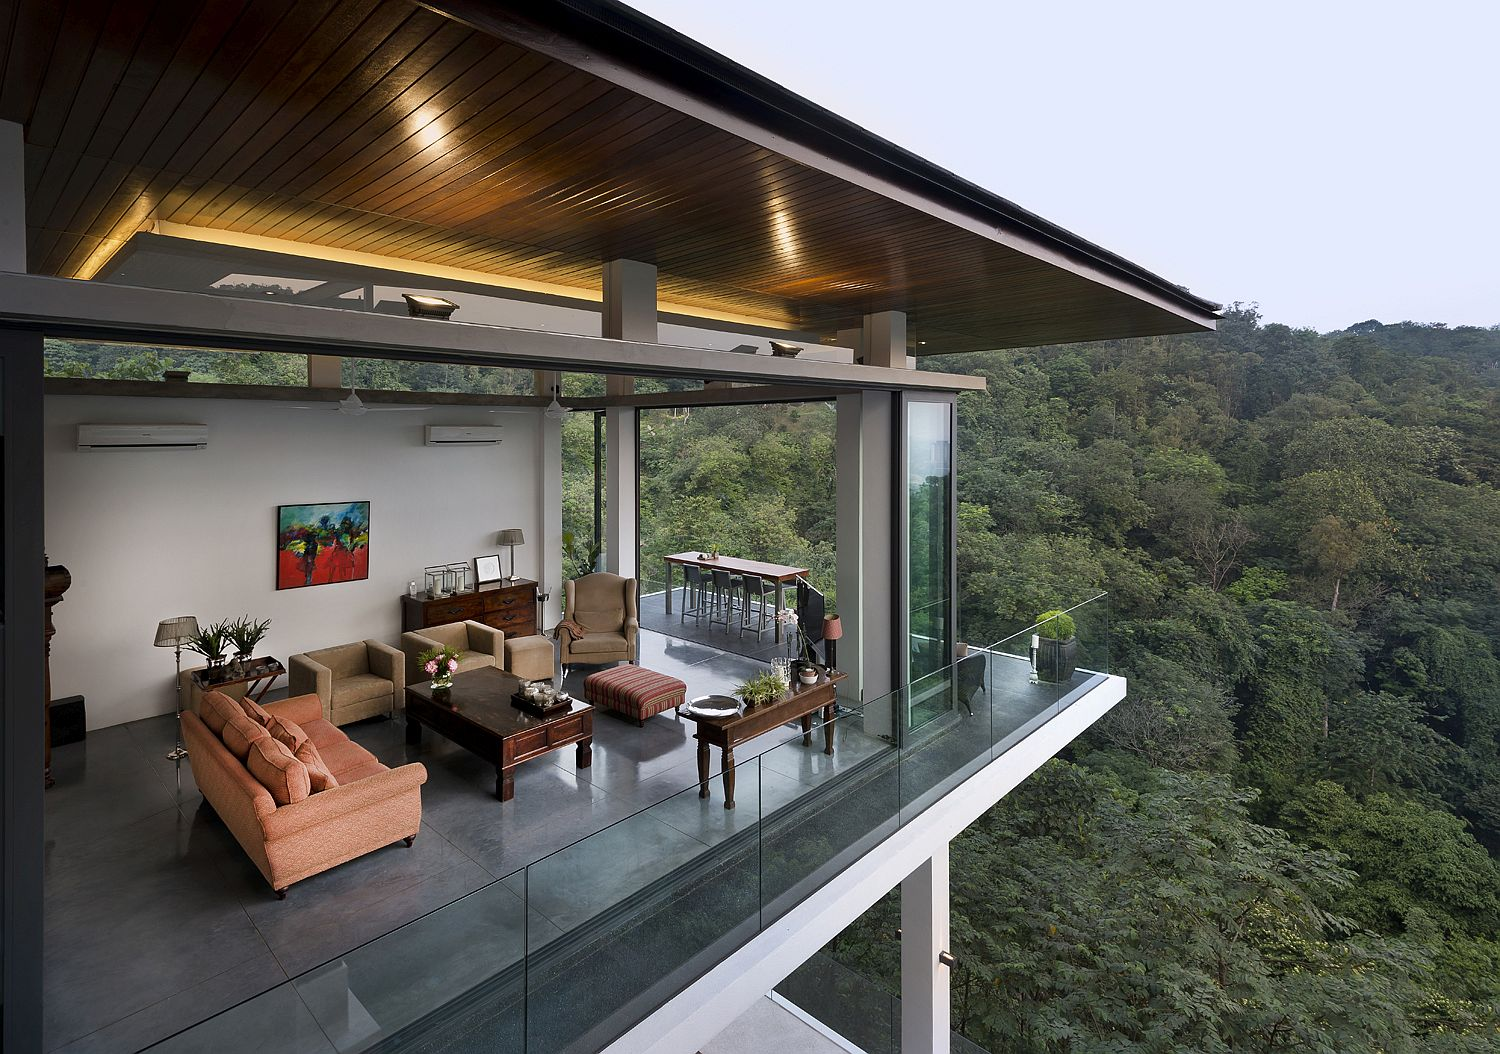 Spectacular Home Featured on Crazy Rich Asians with Amazing Forest Views!